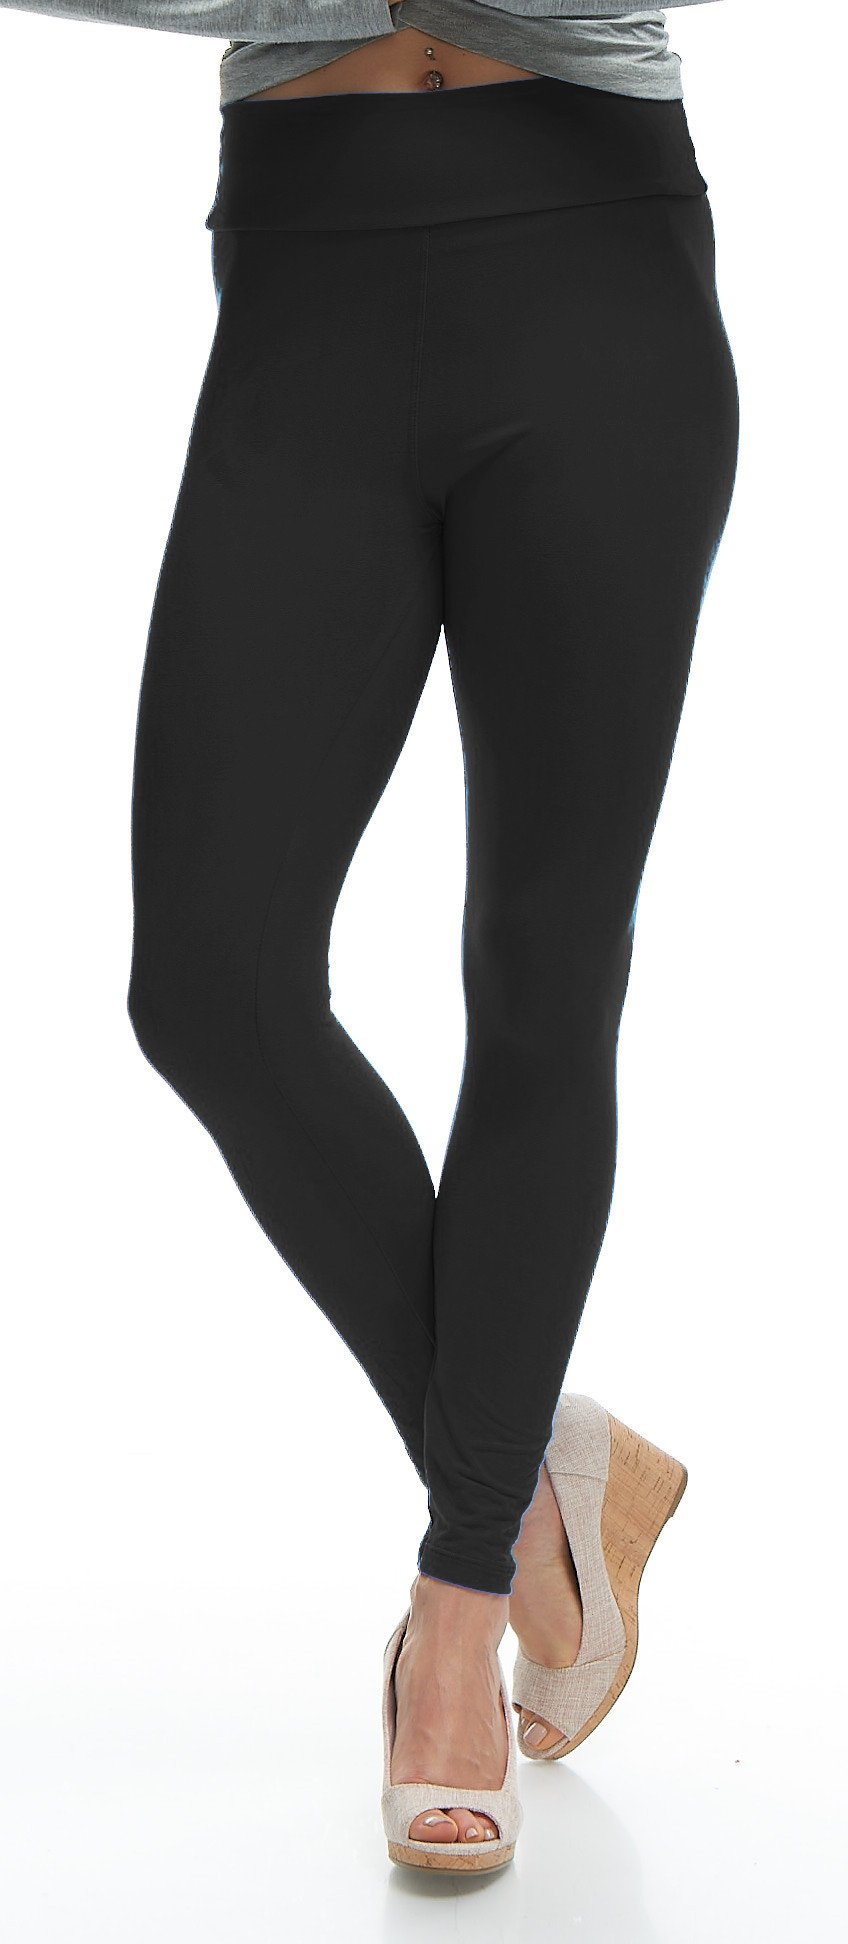 LMB Yoga Leggings Buttery Soft Material - Variety of Colors - Black by LMB (Image #3)